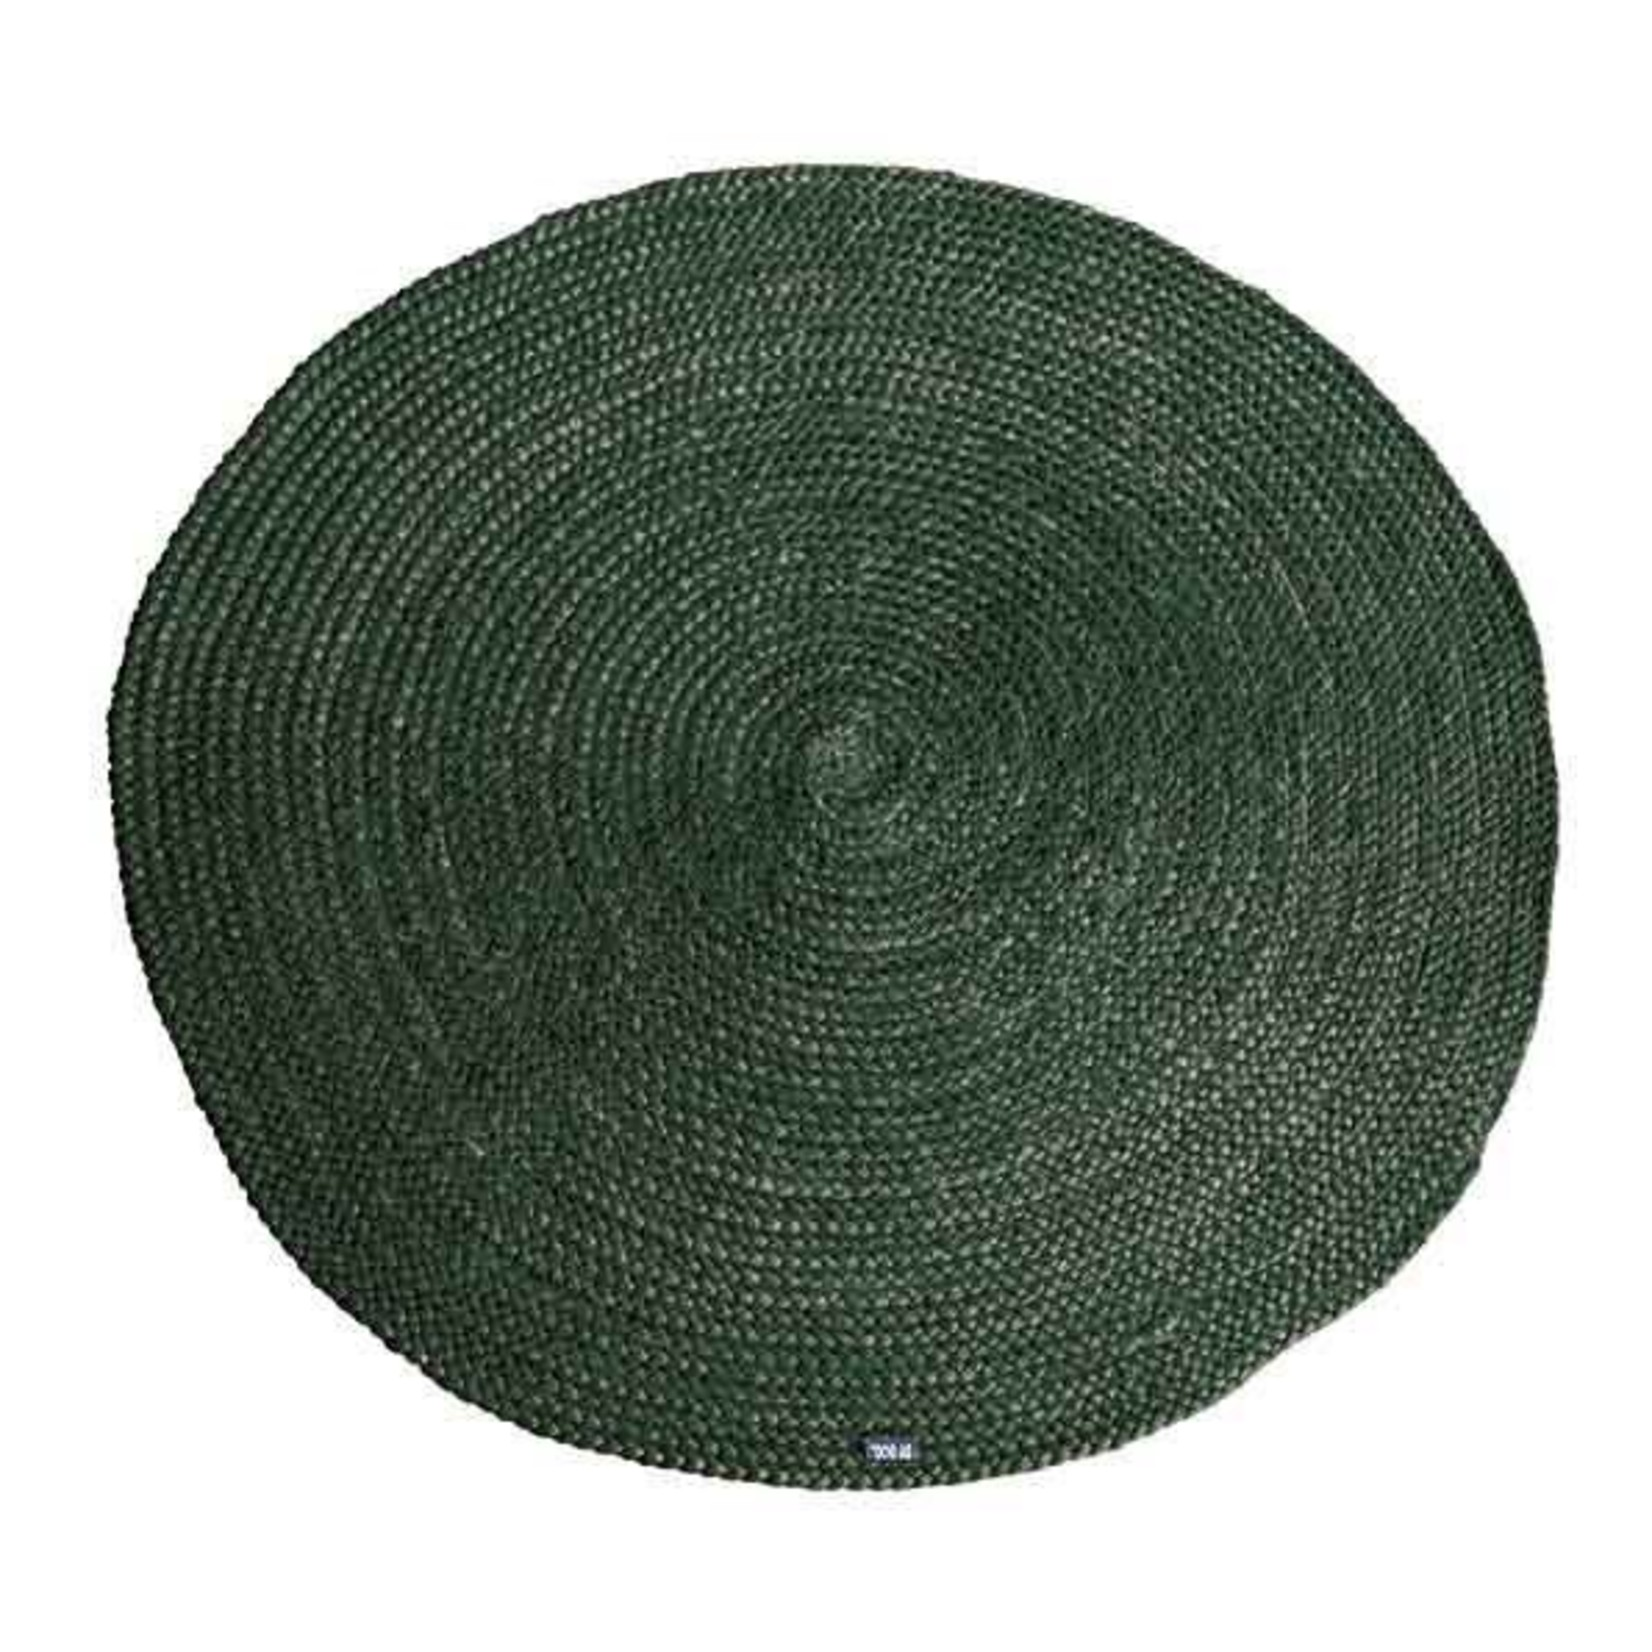 By Boo Carpet Jute round 120x120 cm - green